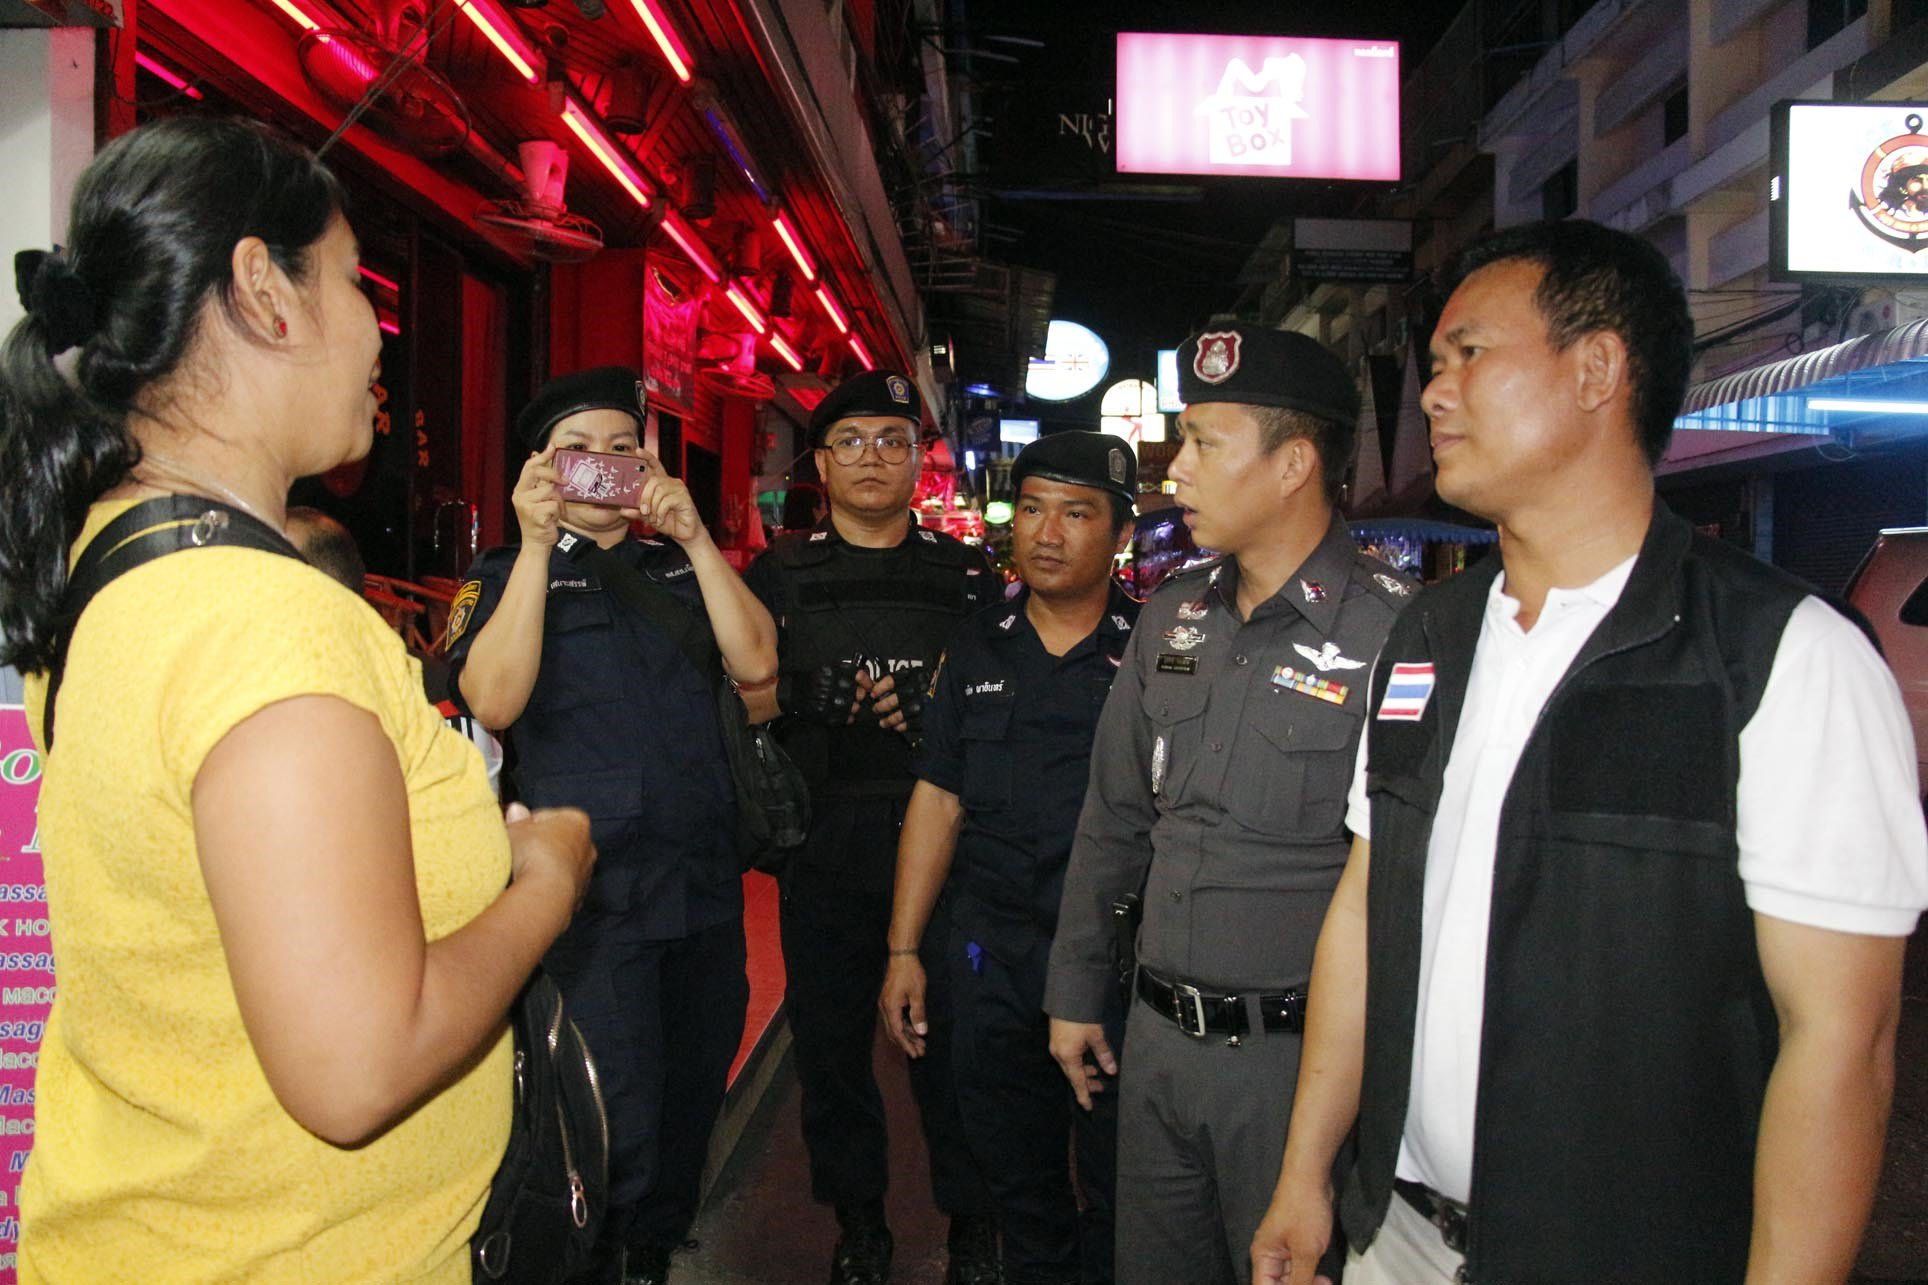 Police raid Soi 6, find nothing amiss - Pattaya Mail